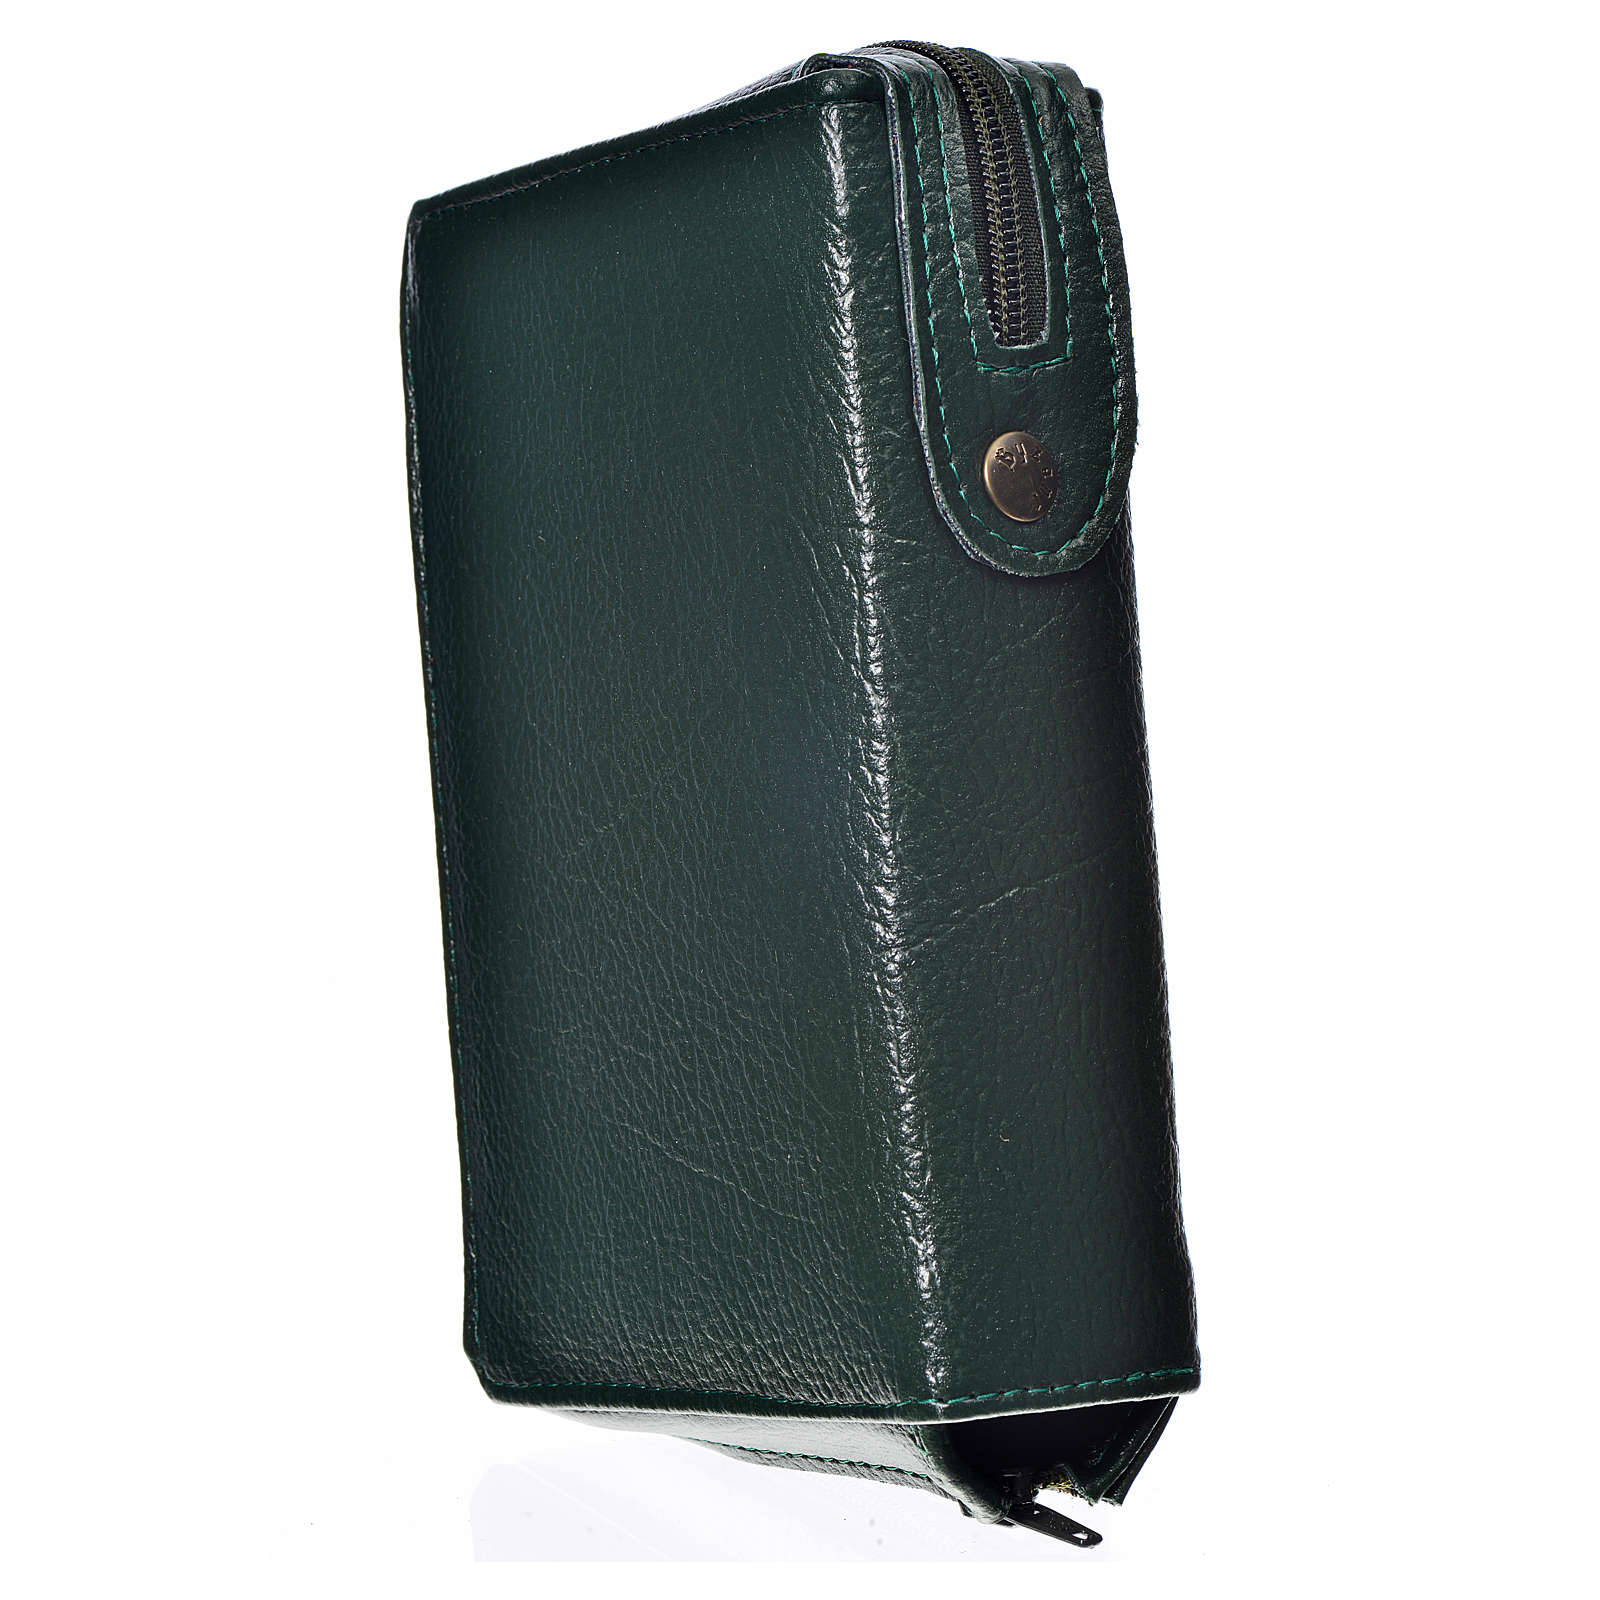 Cover for the New Jerusalem Bible with Hardcover, green bonded leather Our Lady of Tenderness 4